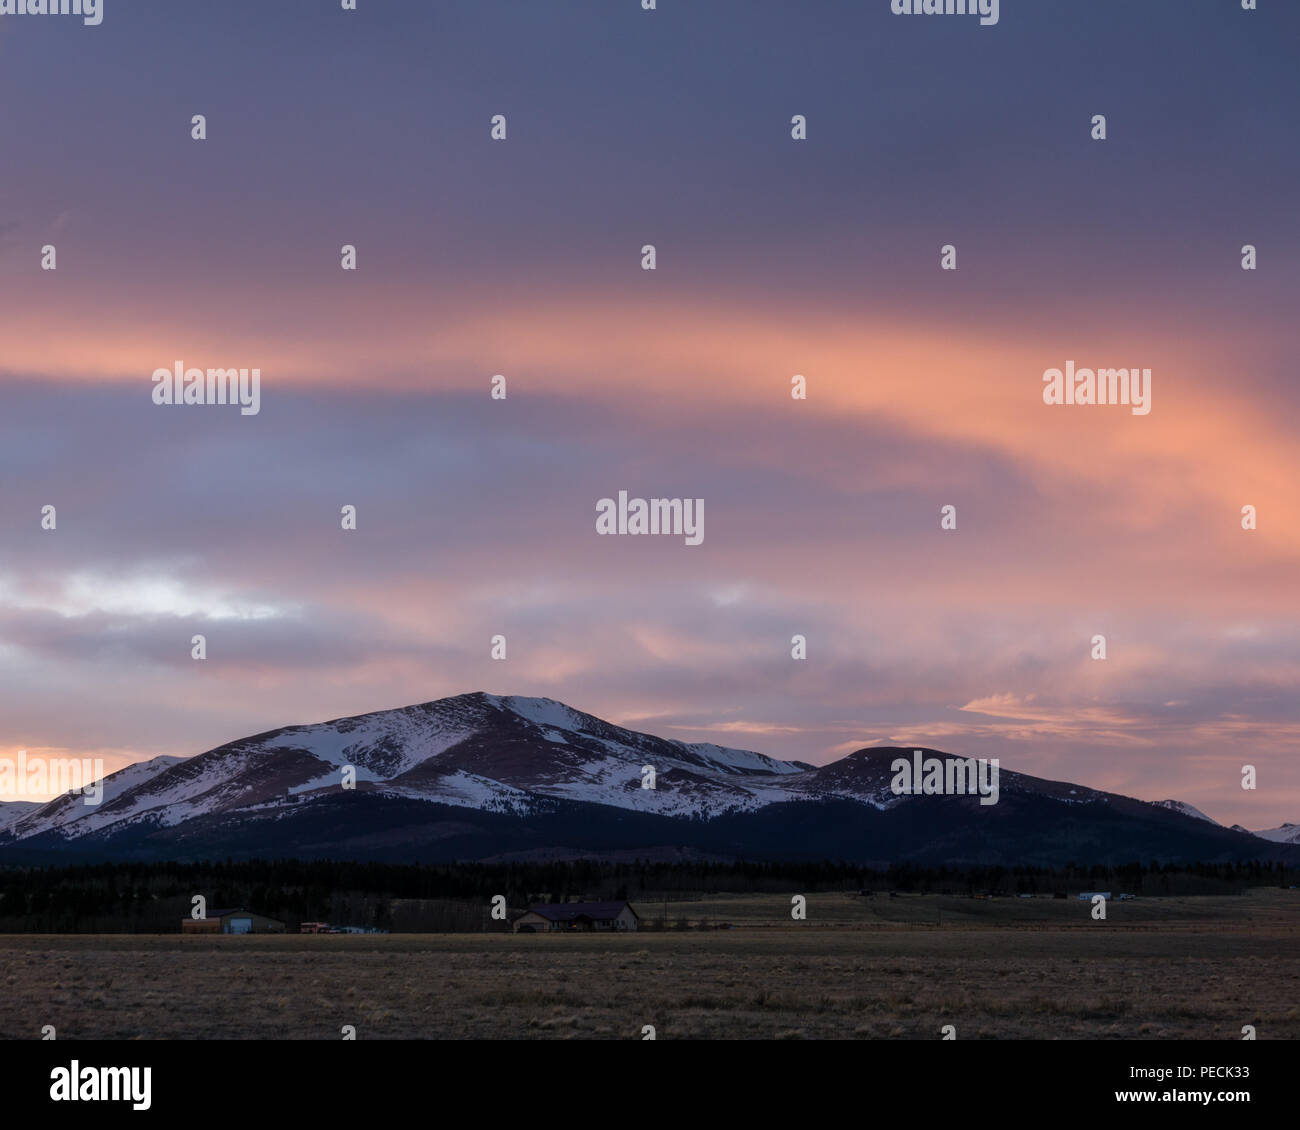 Sunset from South Park, outside of Fairplay, Colorado. - Stock Image